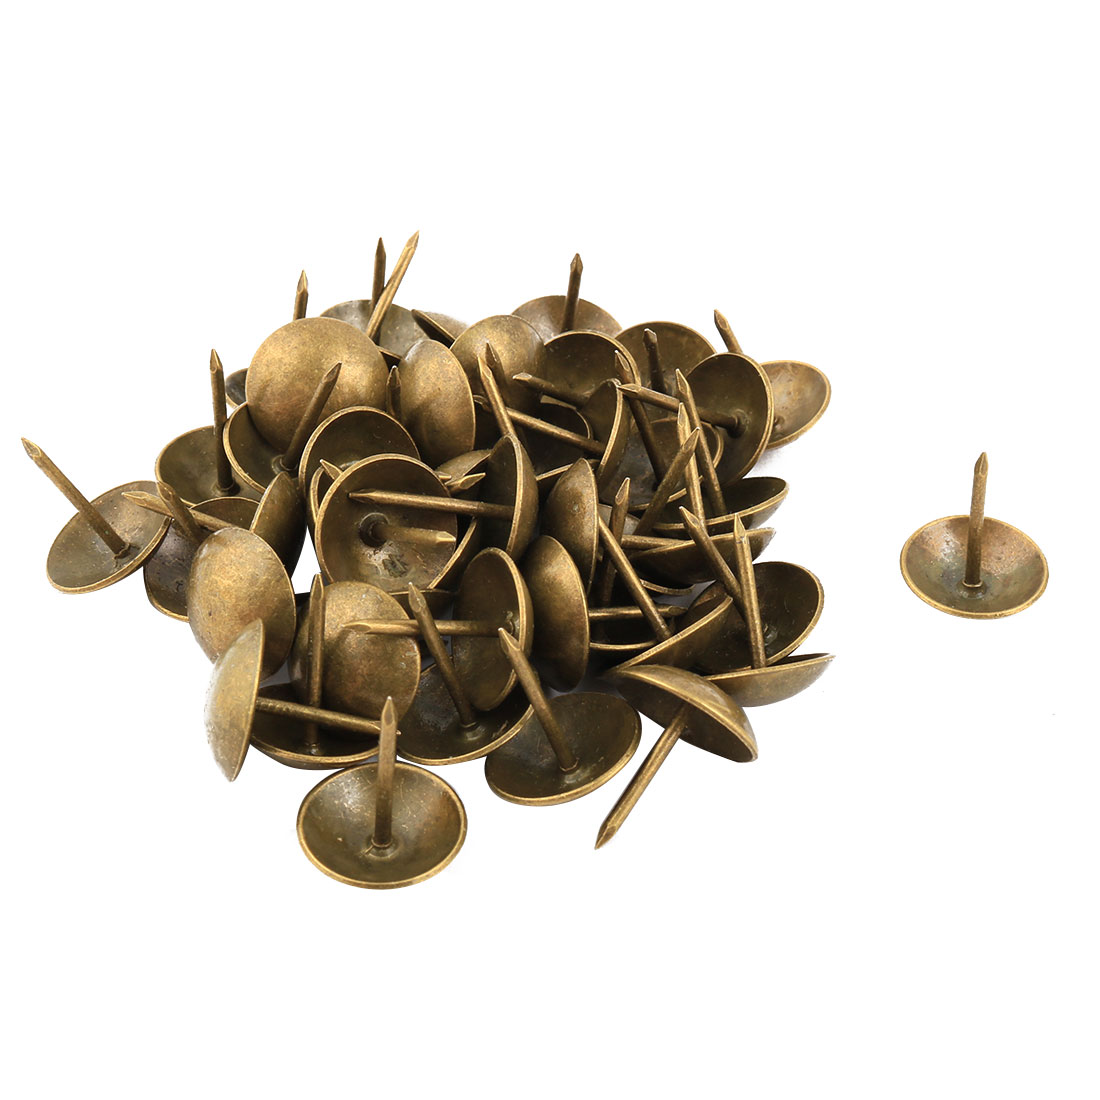 Family Furniture Thumb Tack Nail Calender Pushpin Bronze Tone 16 x 19mm 48pcs